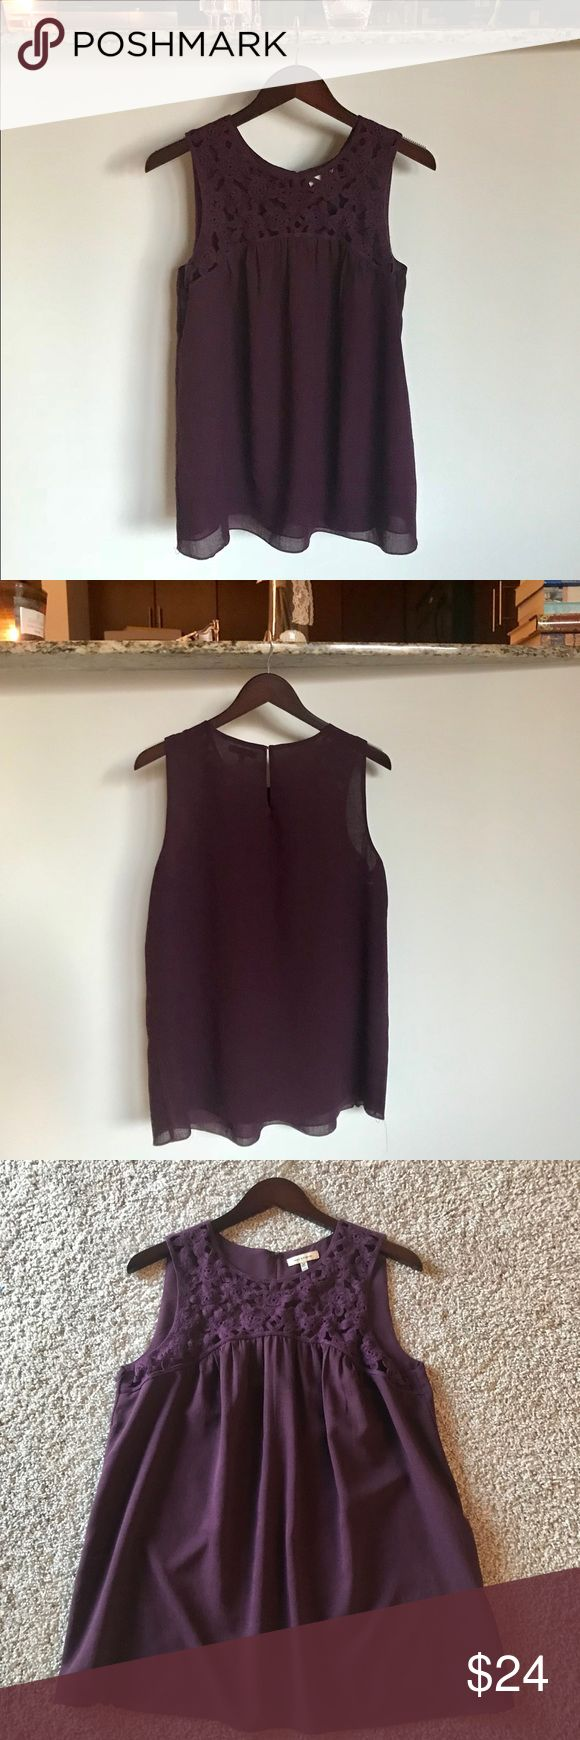 Max Studio. NWOT Knit detailed sleeveless blouse Maintaining a rotating Wardrobe Happy shopping and selling!   -Always 100% authentic  -Price listed is firm, but I offer awesome private discounts on bundles! -Free shipping on all bundles -Same-day ship when possible  CONDITION & DETAILS: Perfect, NWOT never worn; size M, true to size; beautiful deep purple color; knitted detail on top just in the front; lined/ layered (lining not attached on bottom) Max Studio Tops Blouses